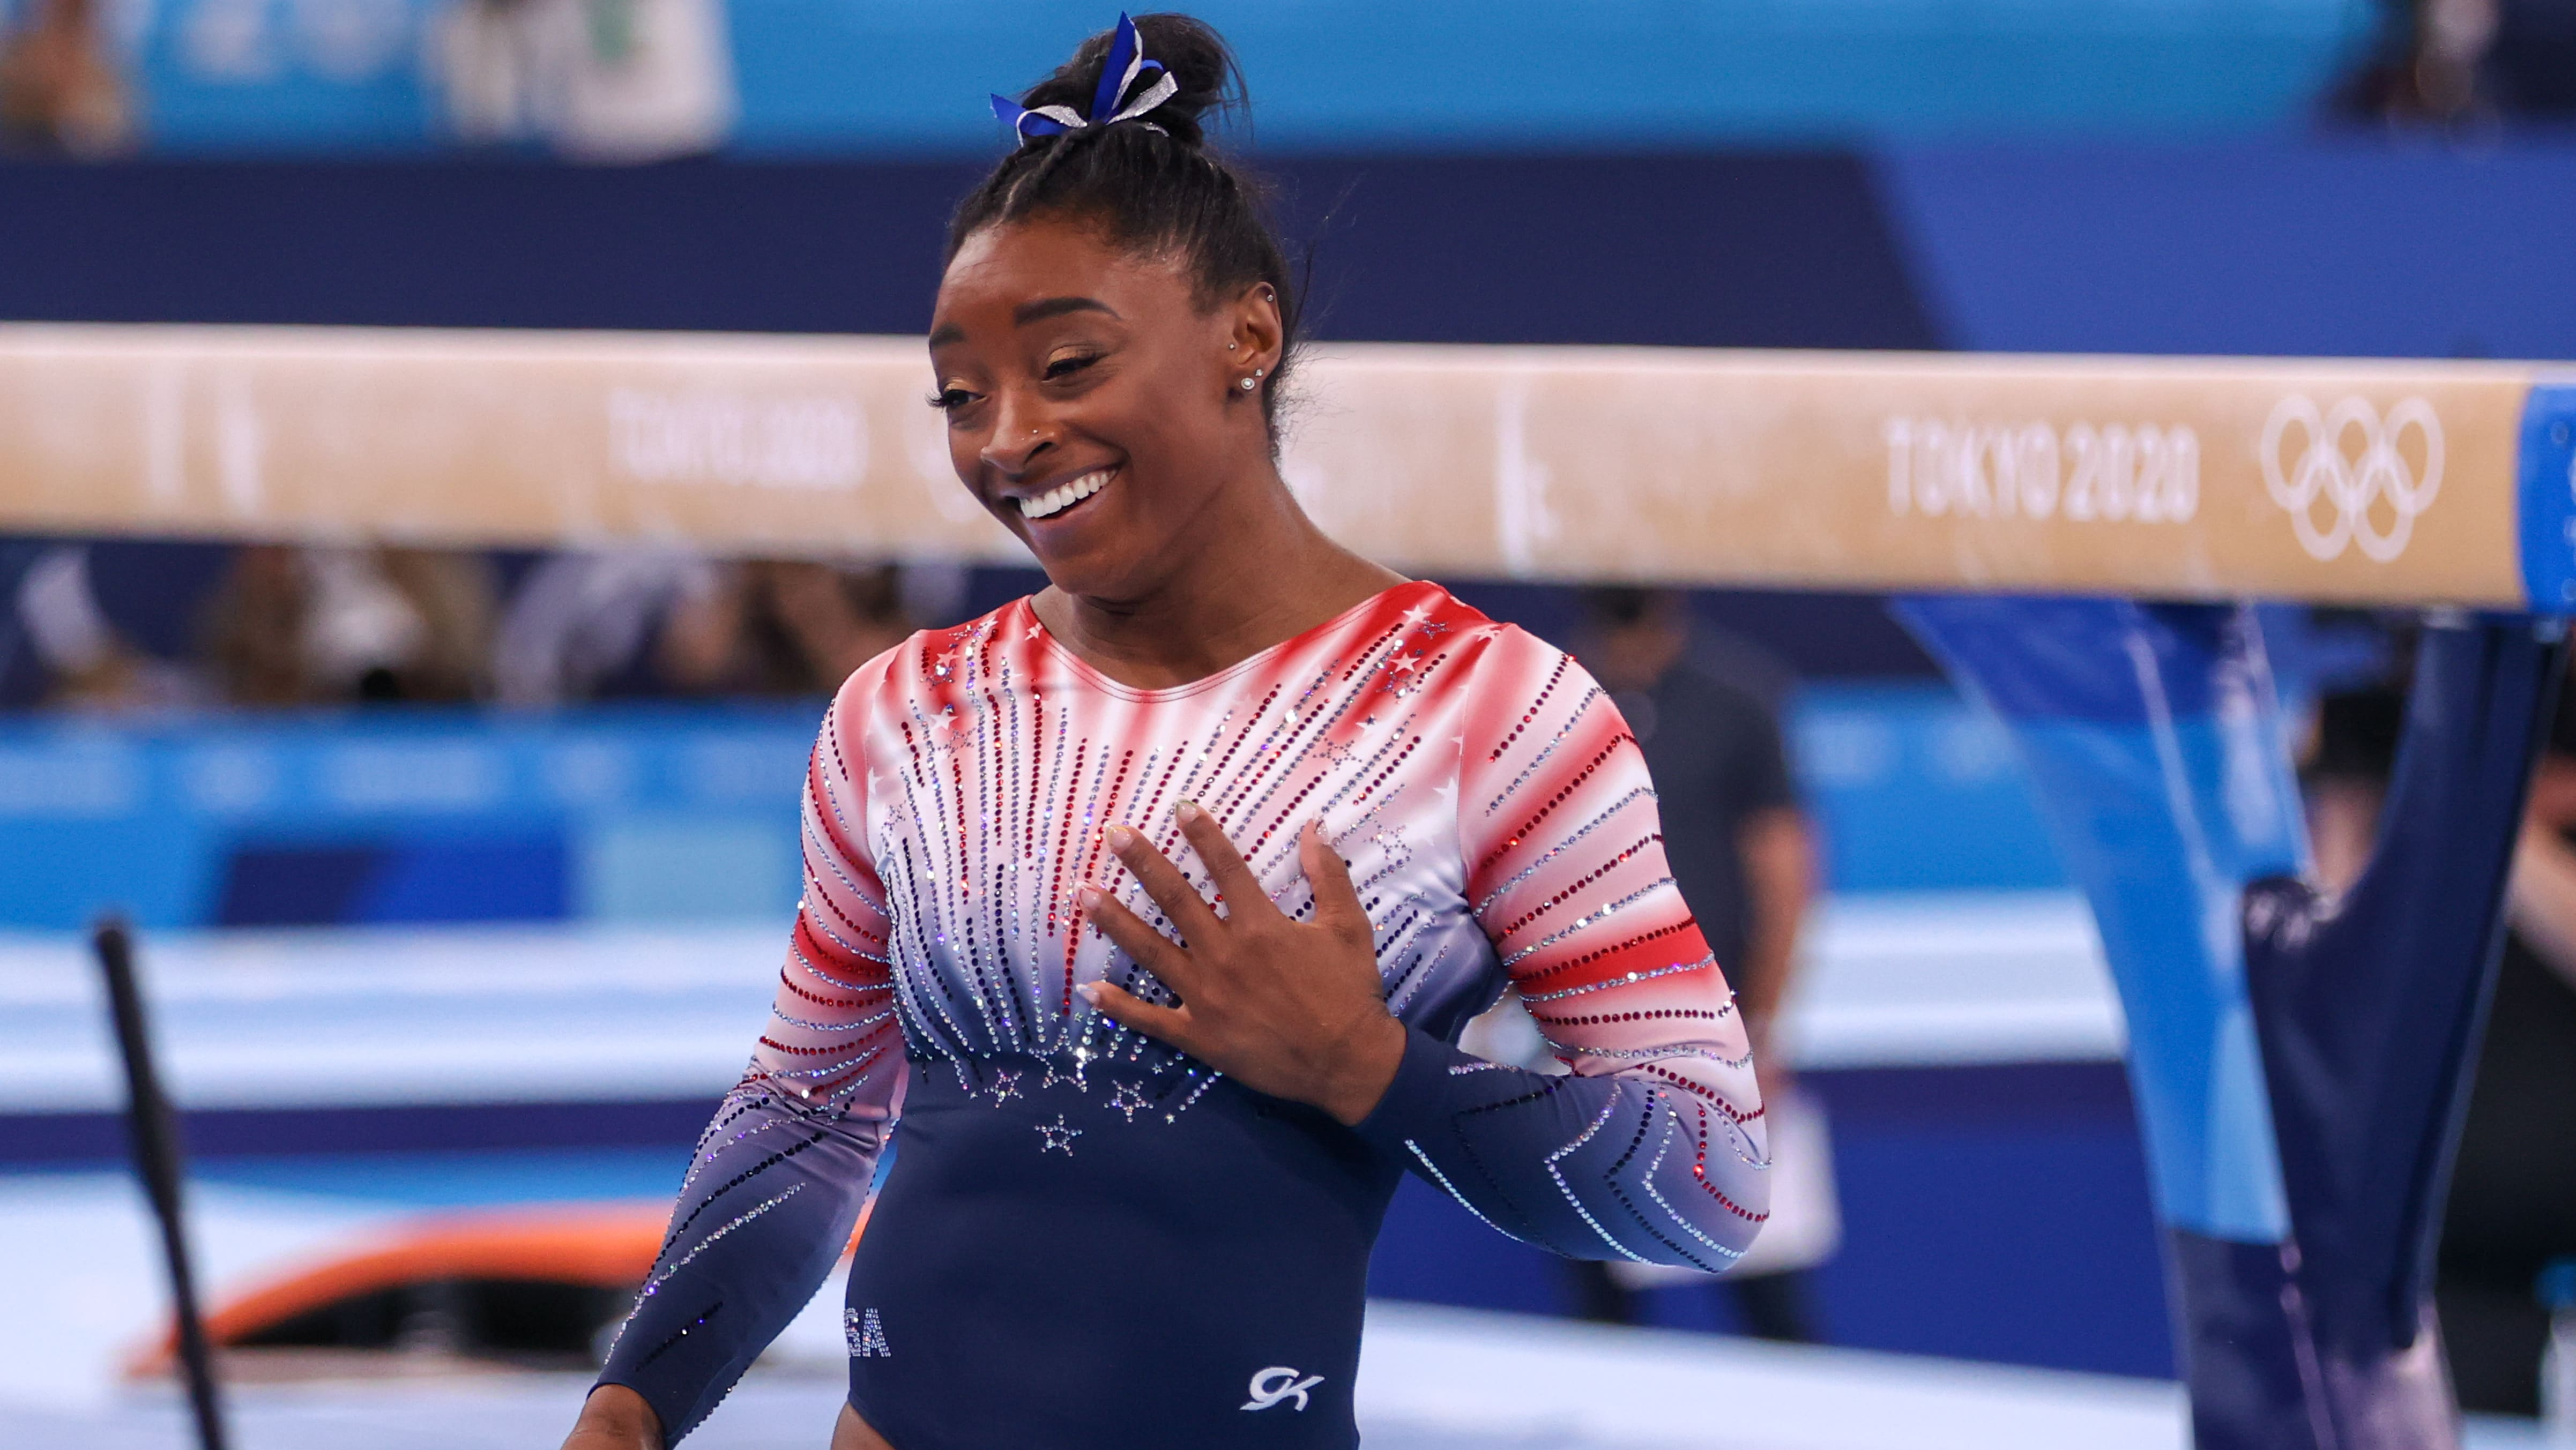 TOKYO, JAPAN - AUGUST 3: Simone Biles of Team United States competes during the Women's Balance...